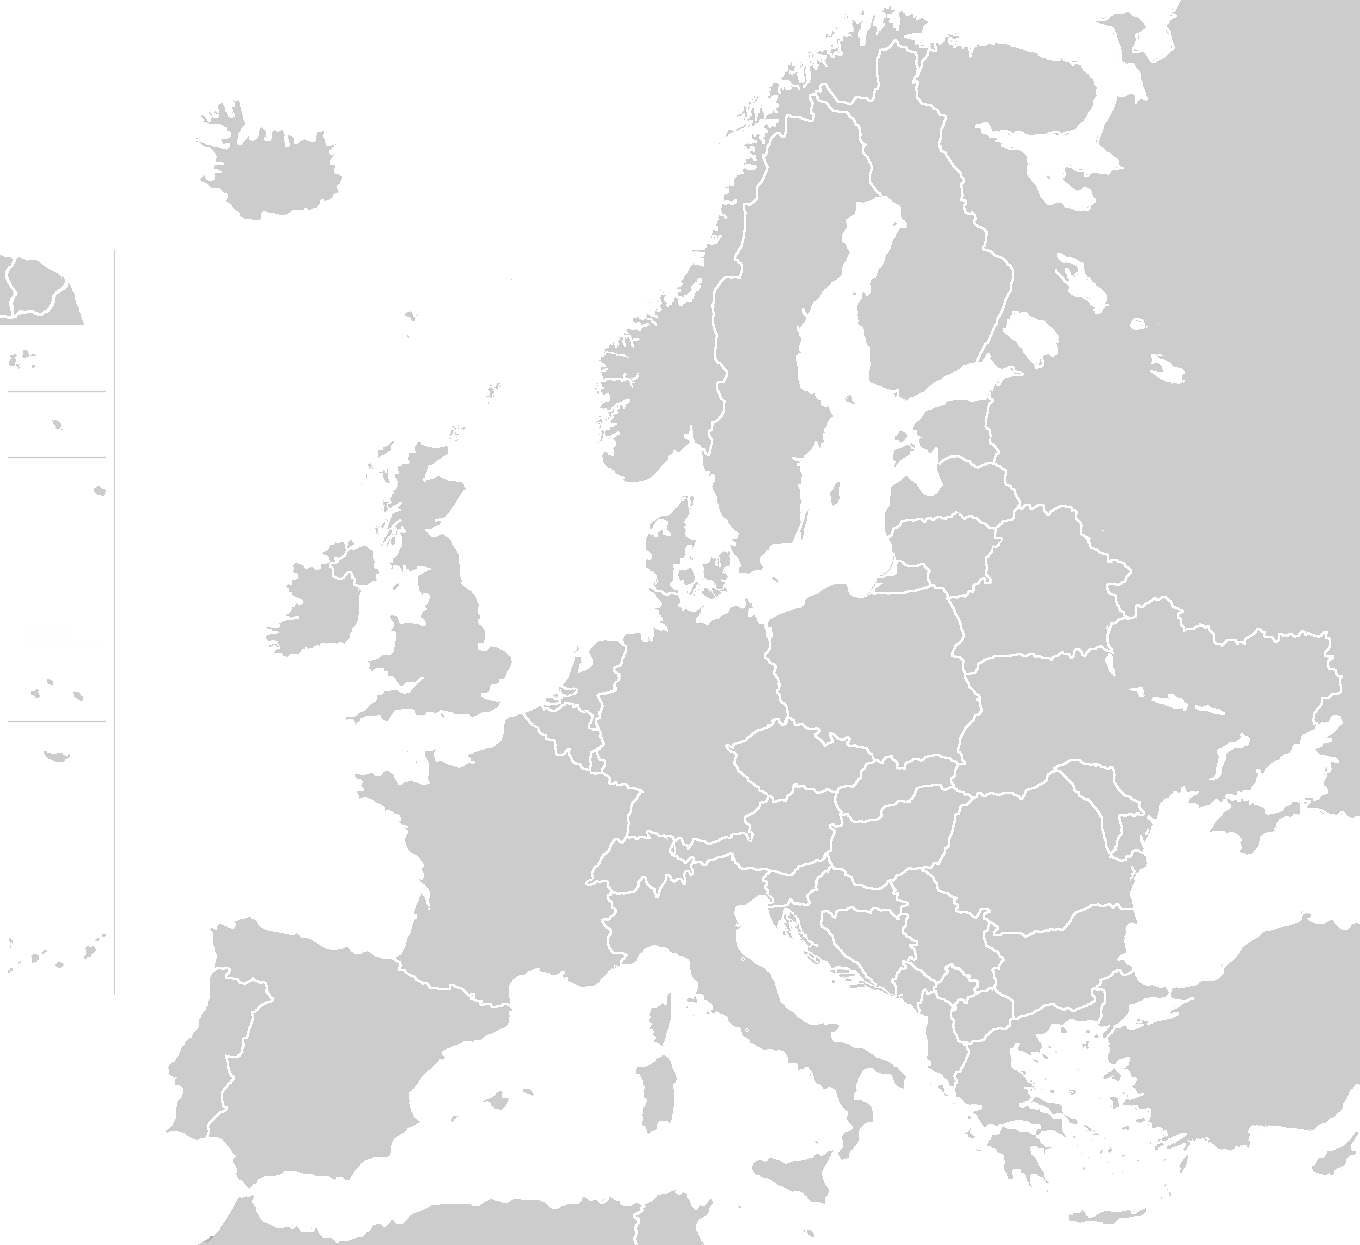 File:Europe blank map.png.